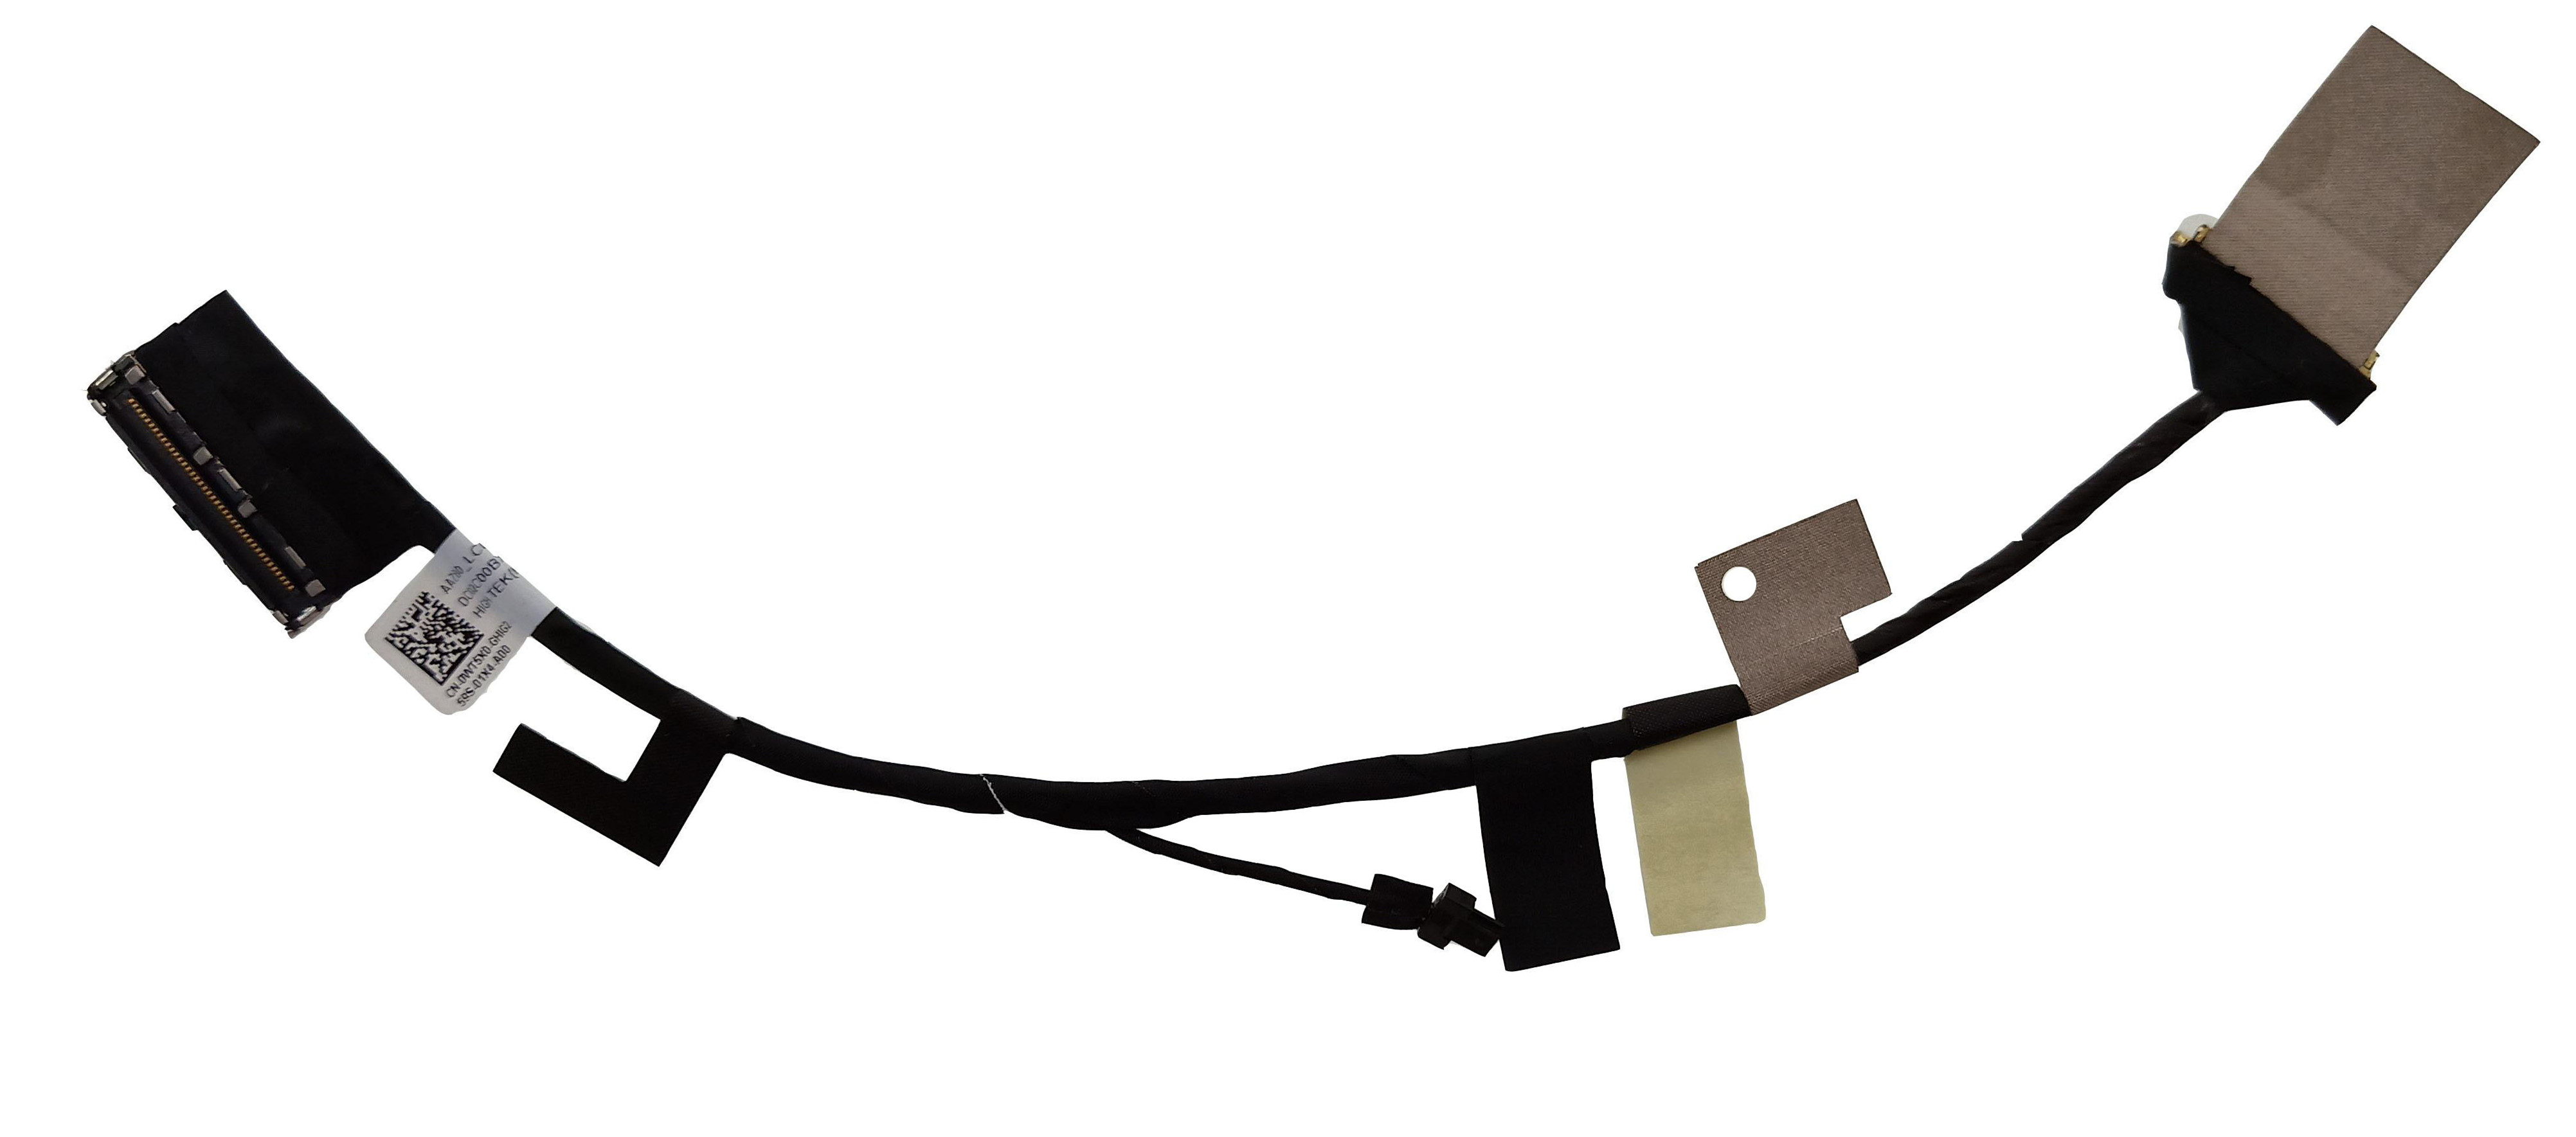 New Dell XPS 13 9350 9360 0WT5X0 WT5X0 AAZ80_EDP_CABLE_QHD DC02C00BX10 LED LCD Screen LVDS VIDEO Display Cable